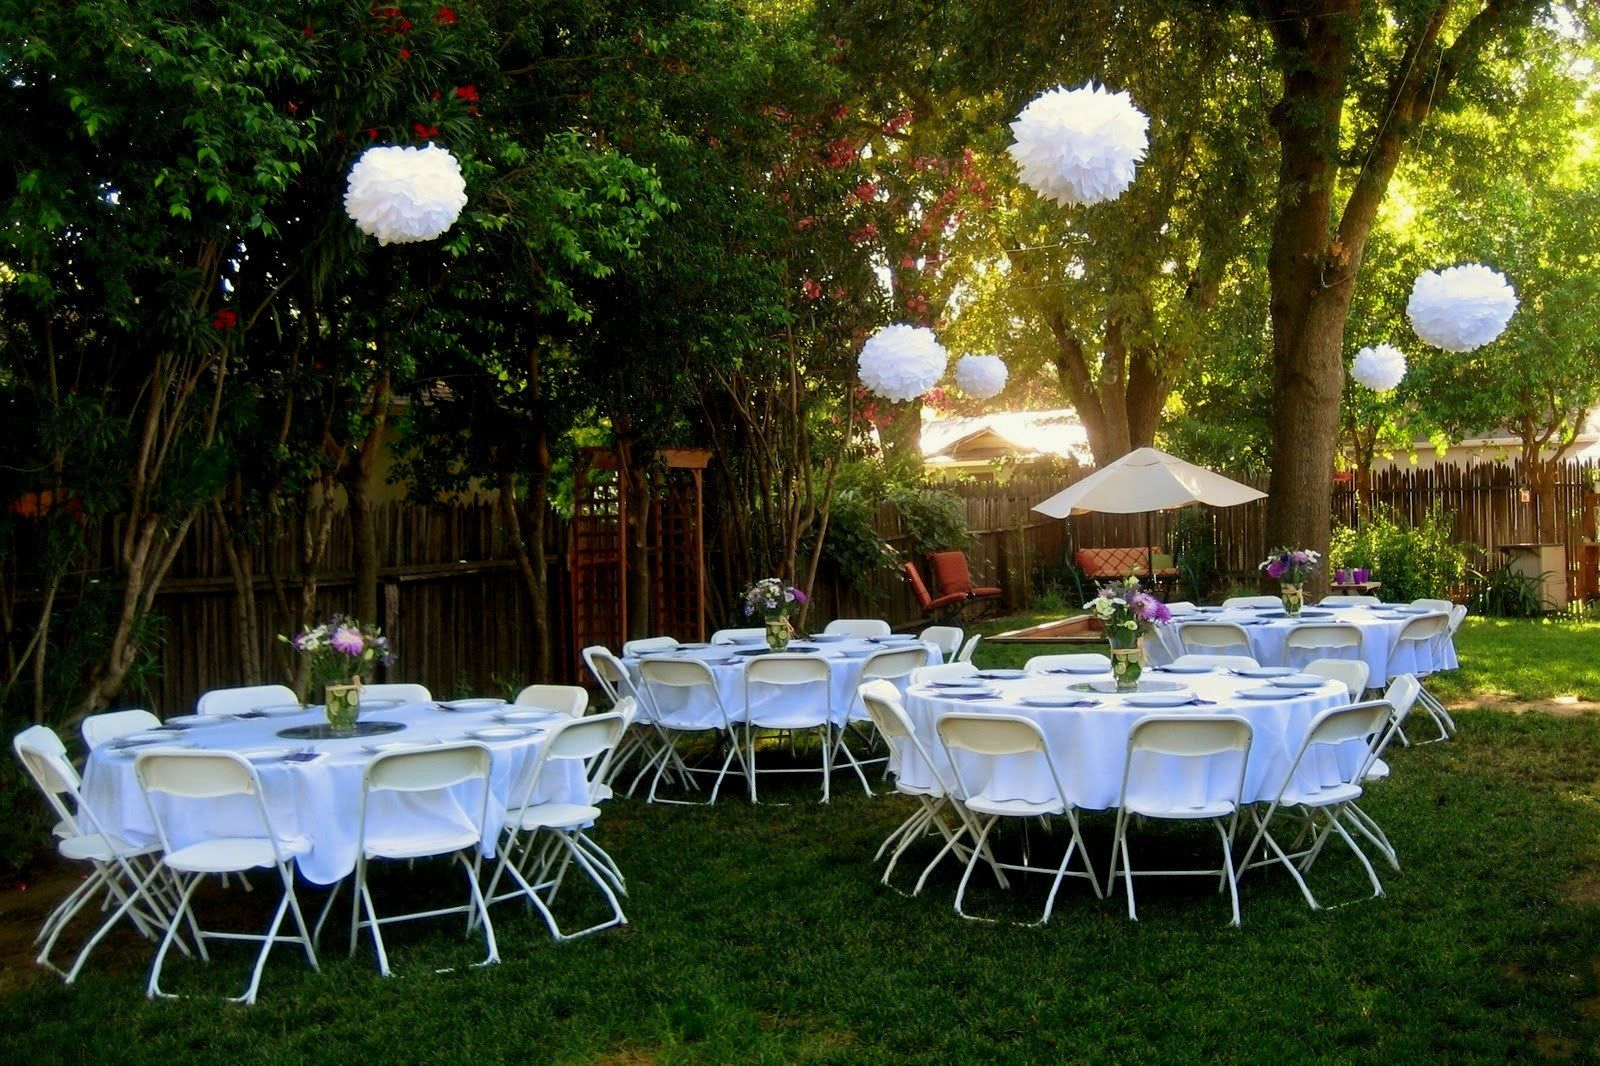 How to plan a small backyard wedding fresh in inspiring outdoor how to plan a small backyard wedding fresh in inspiring outdoor wedding decoration landscaping ideas how junglespirit Image collections